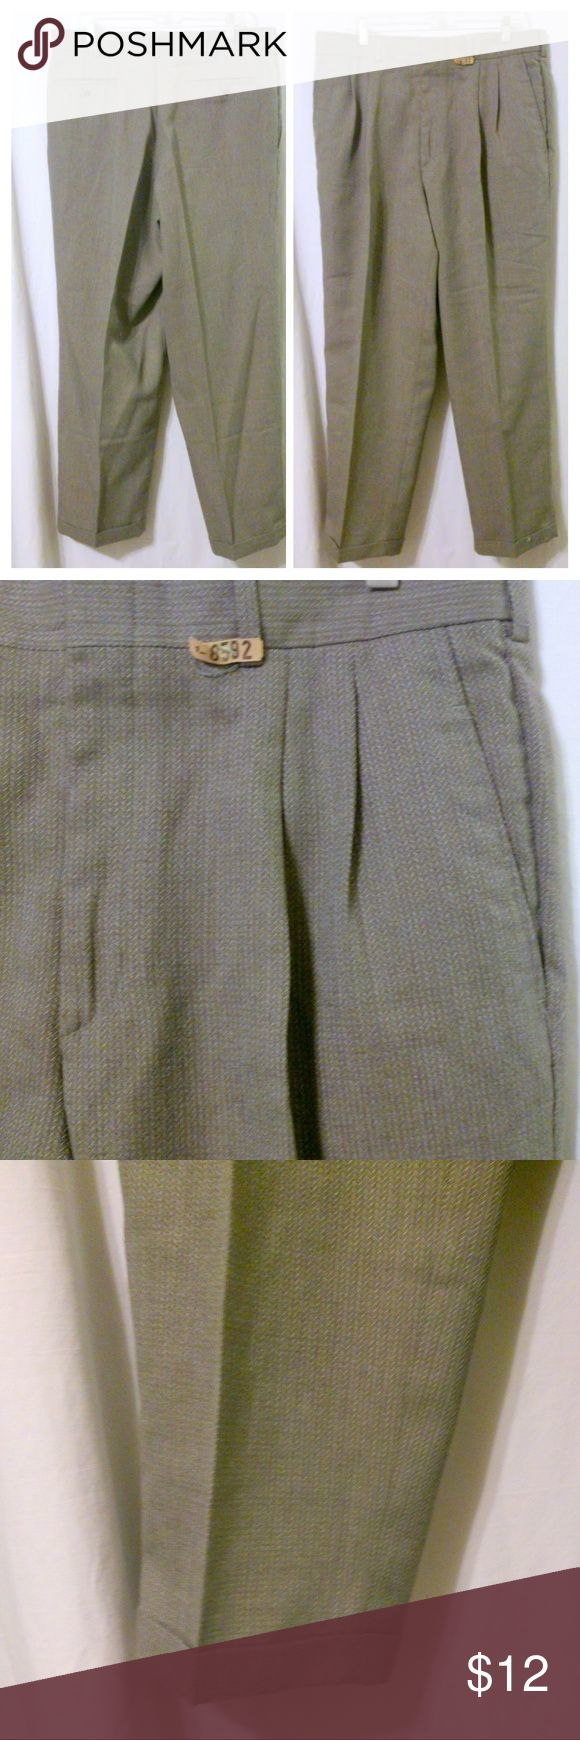 "Savane Men's Pleated Front Dress Slacks? These men's dress slacks are made by Savane. They are done in a polyester wool blend and feature a pleated front and cuffed legs. Measurements are: Waist 36"", inseam 30"". In great condition! Savane Pants Dress"